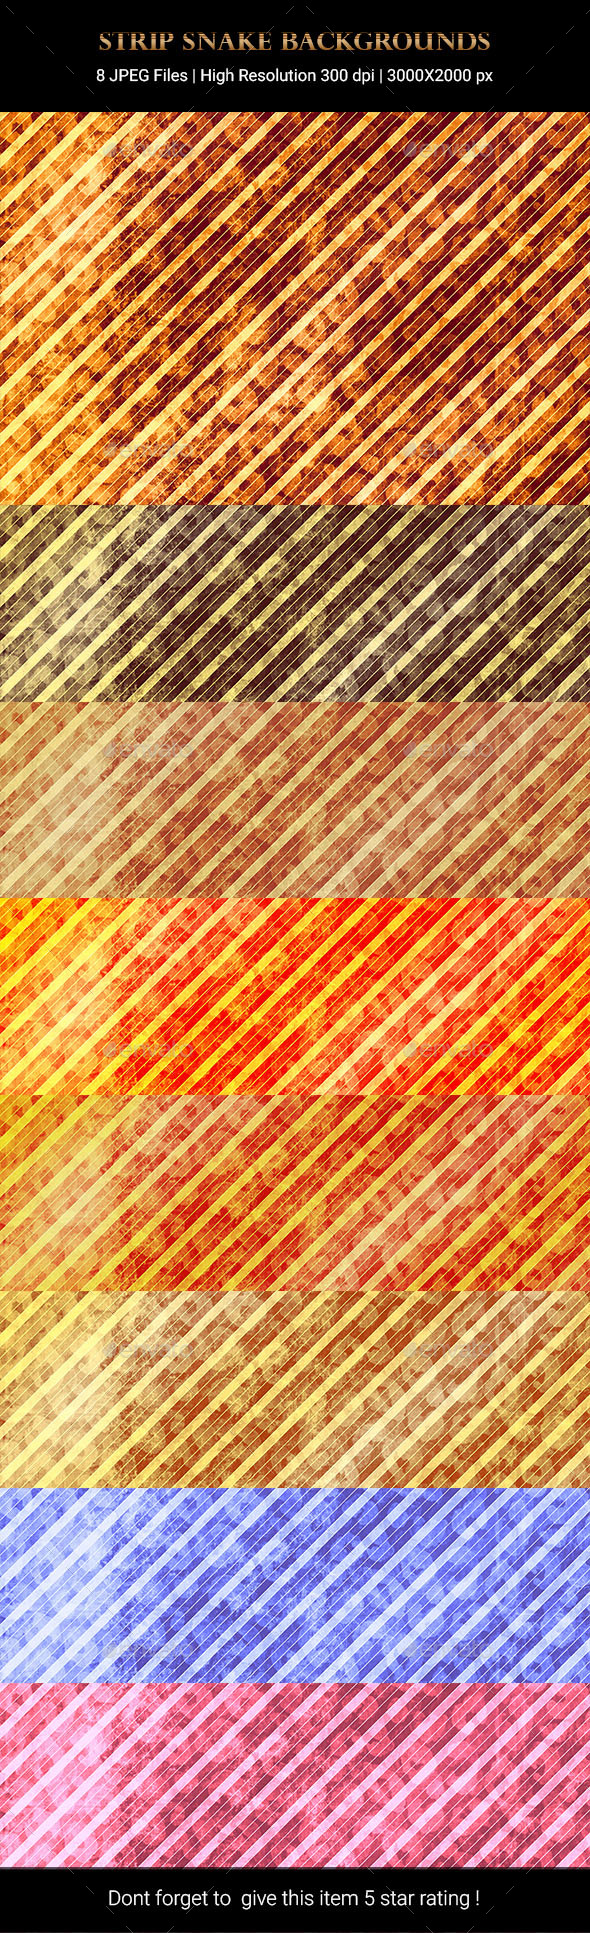 Strip Snake Backgrounds - Backgrounds Graphics